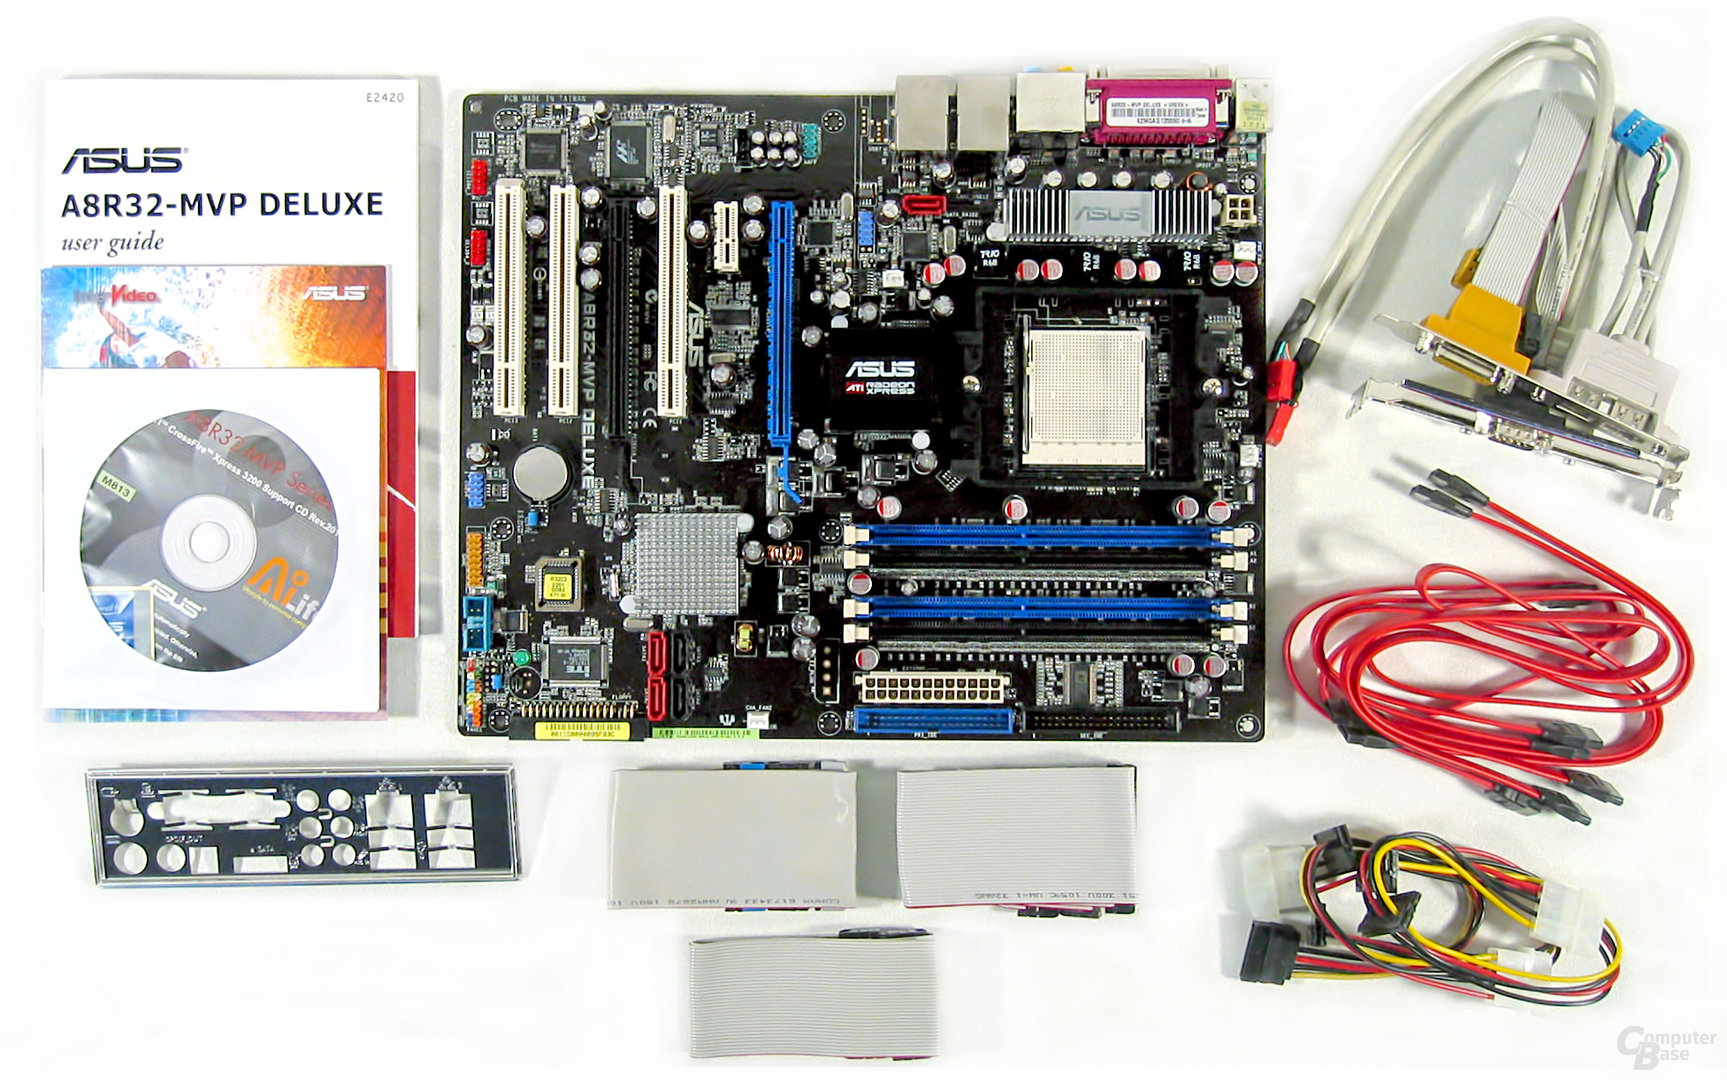 Asus A8R32-MVP Deluxe Lieferumfang